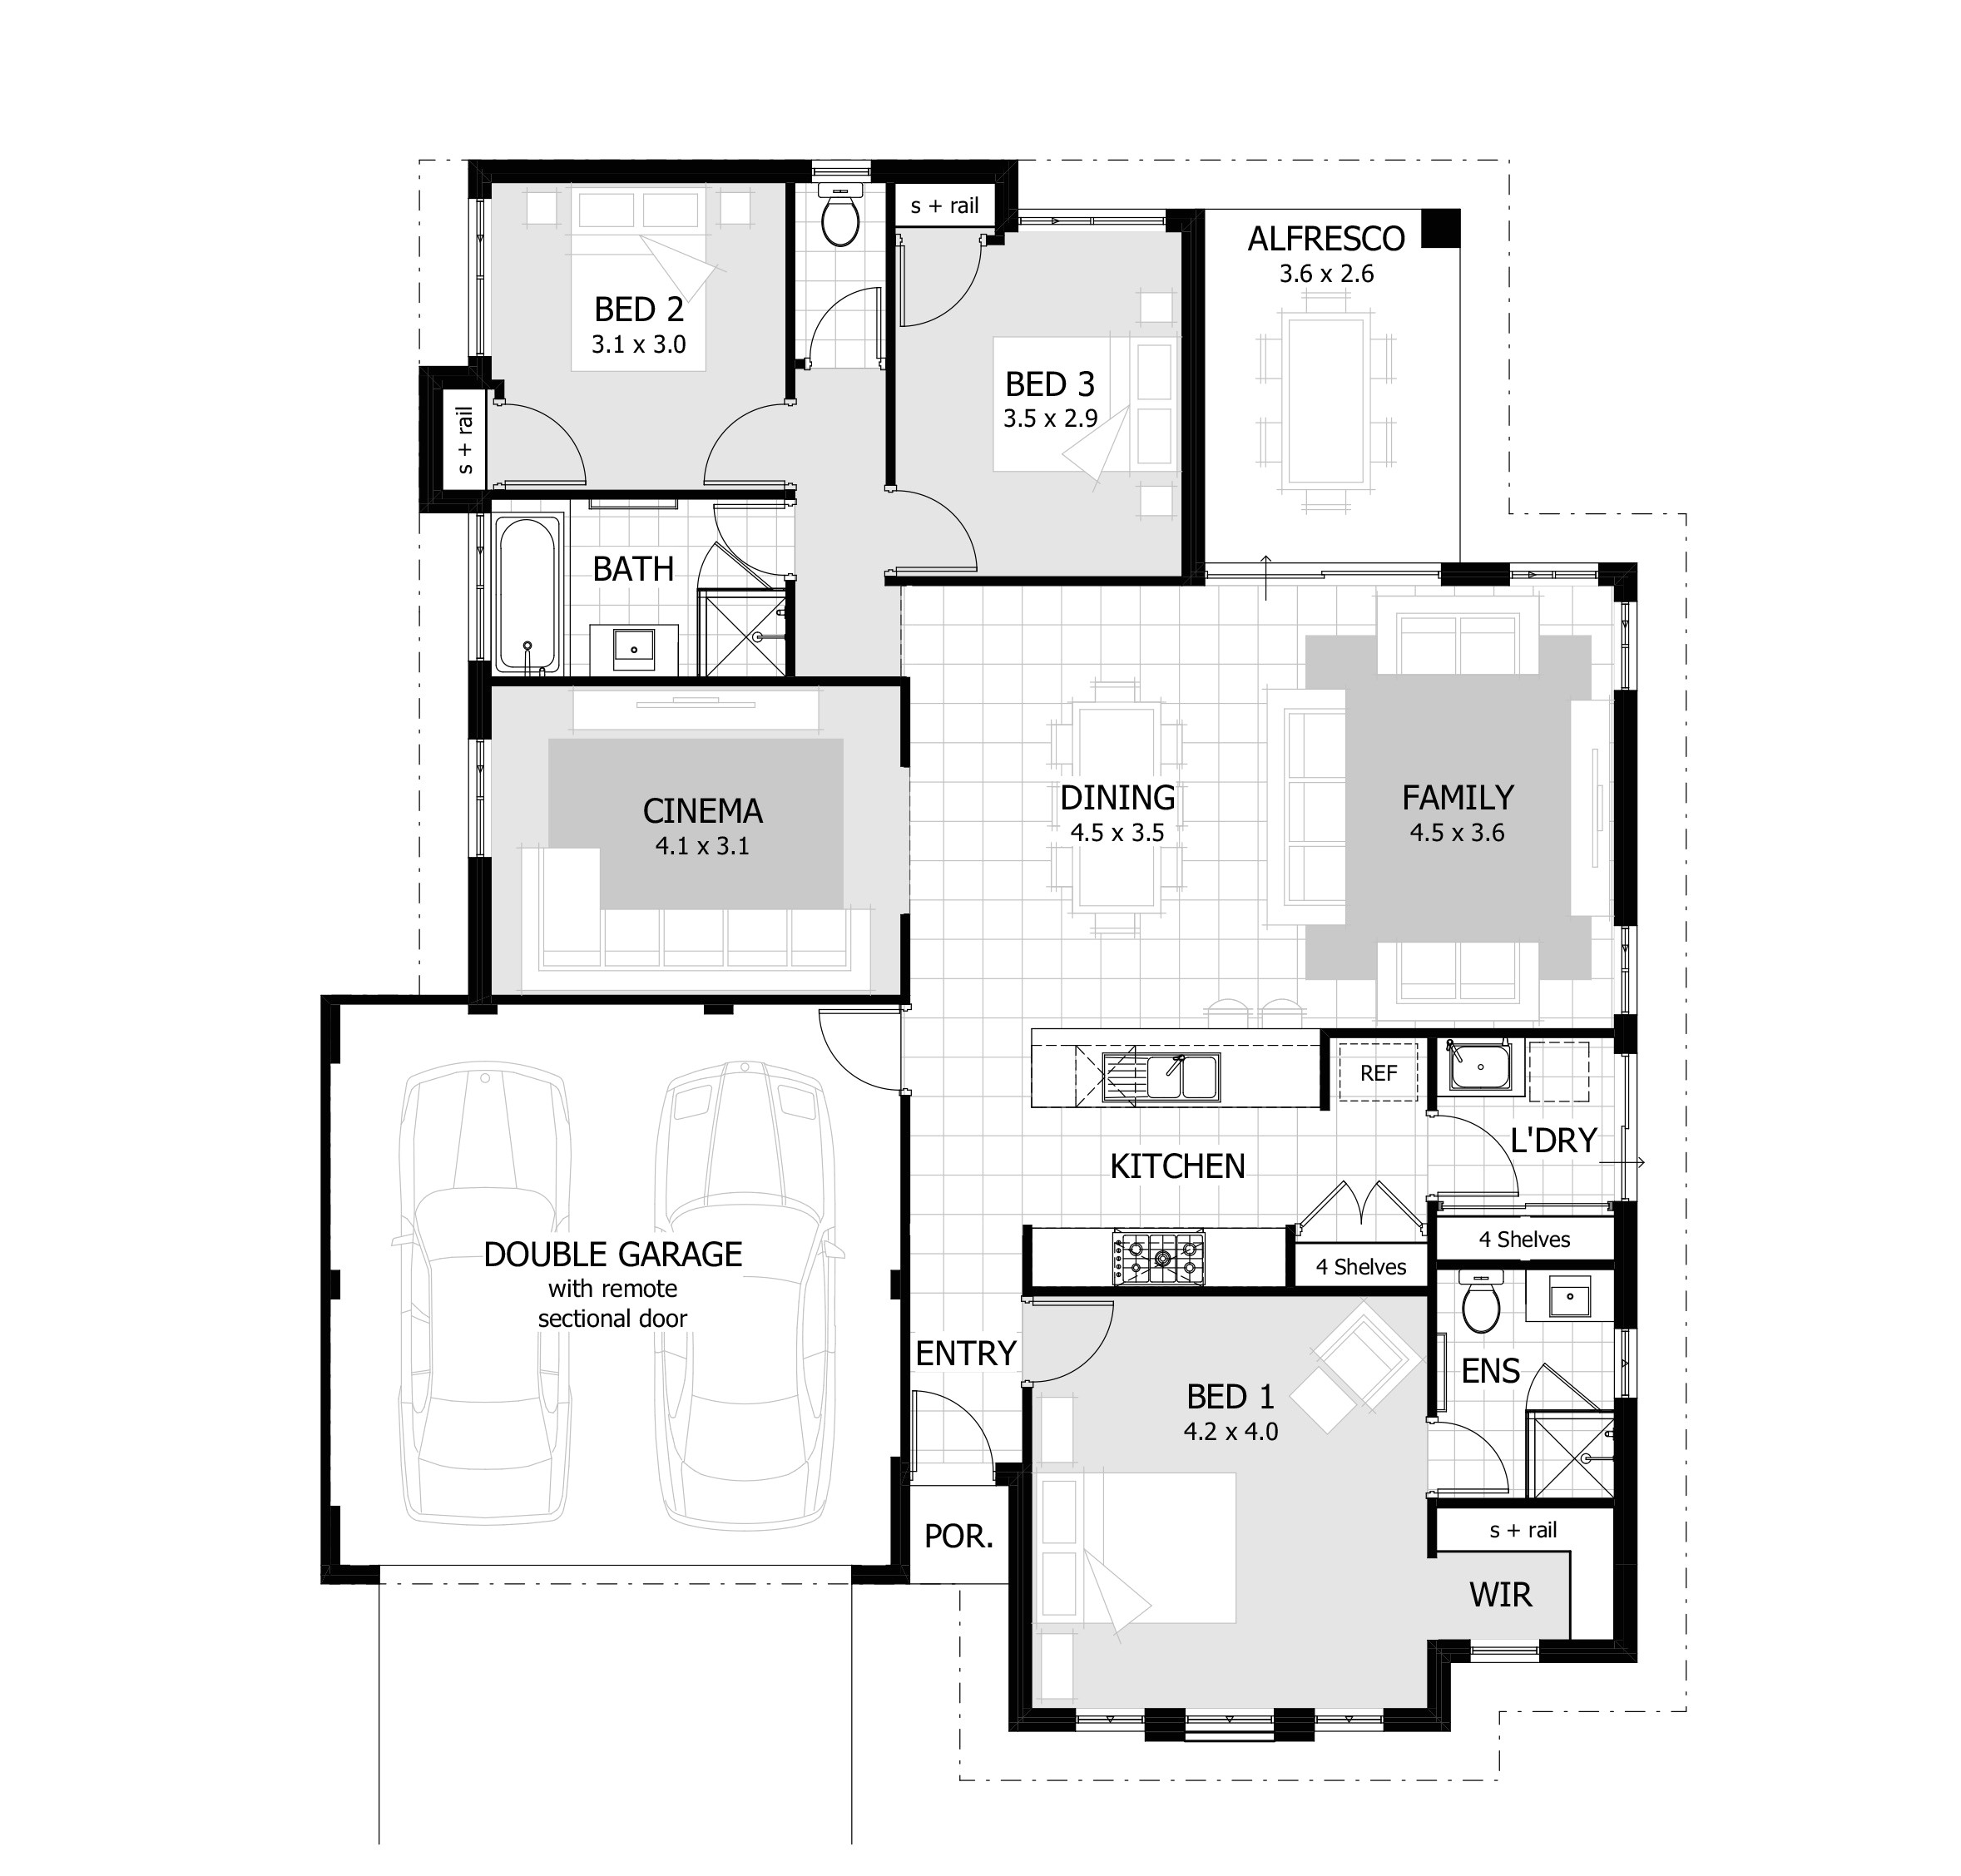 simple 3 bedroom house plans without garage simple 3 bedroom house plans without garage